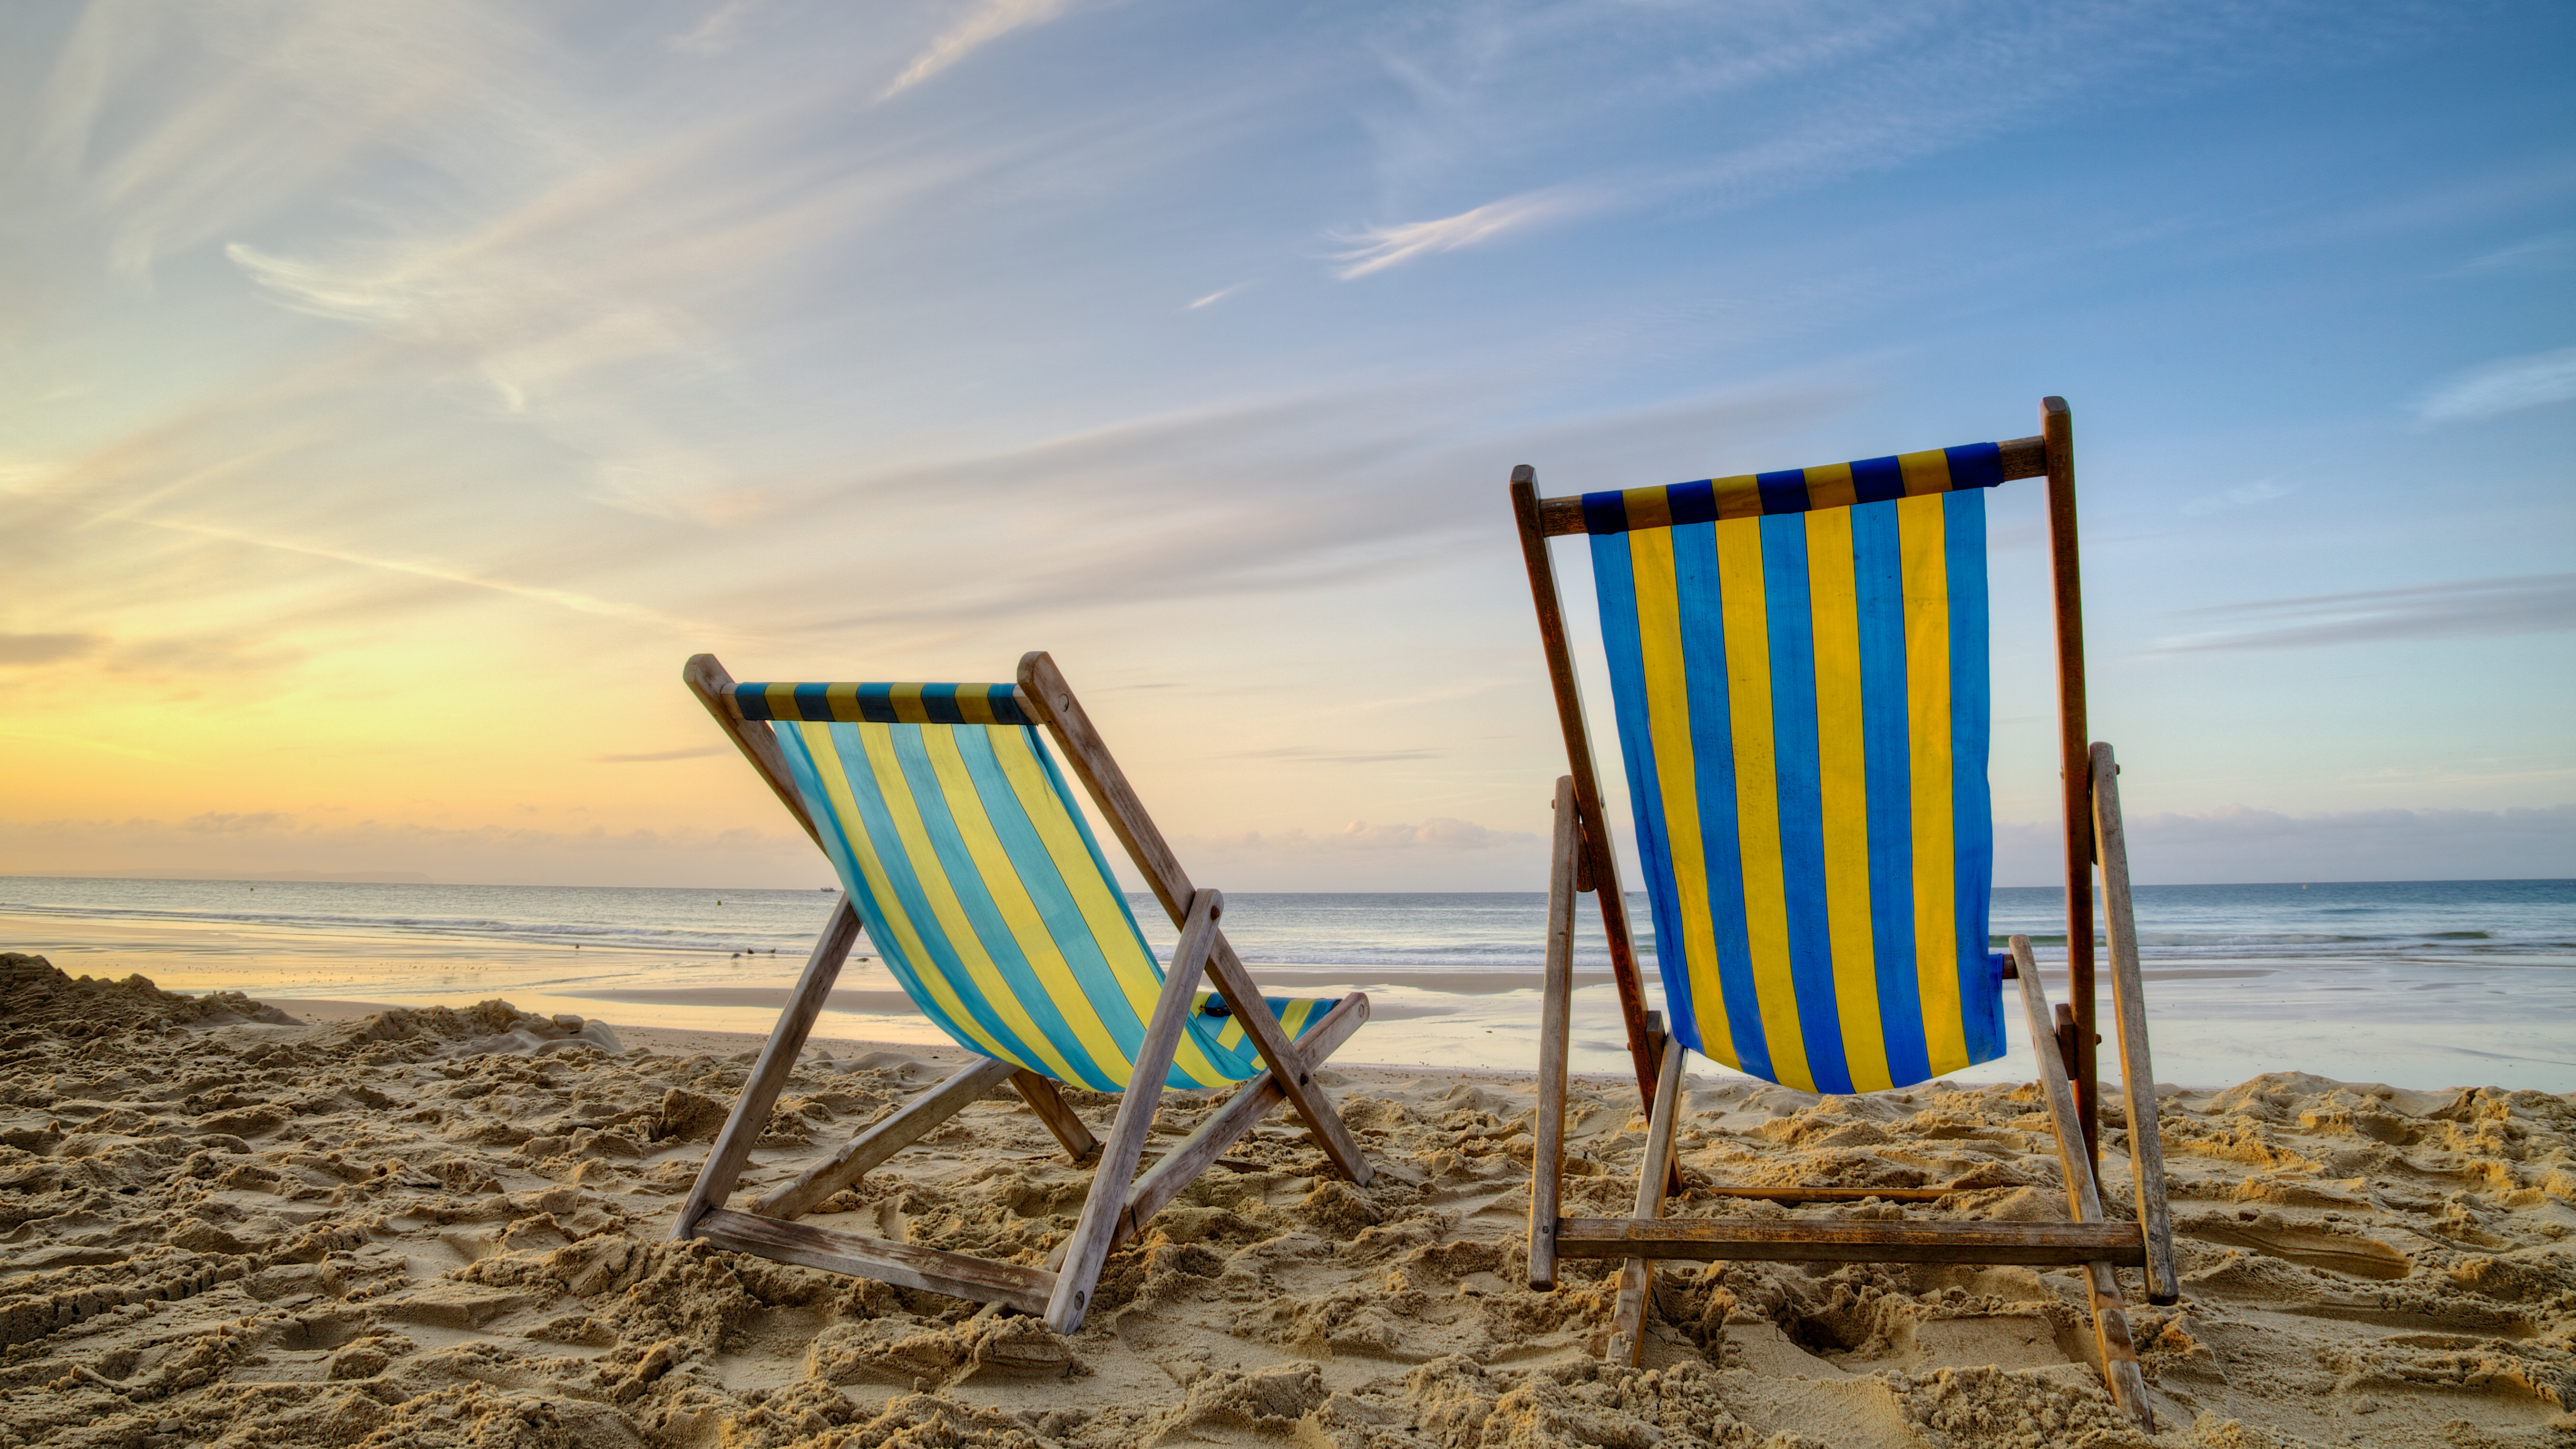 Two empty deck chairs on the beach